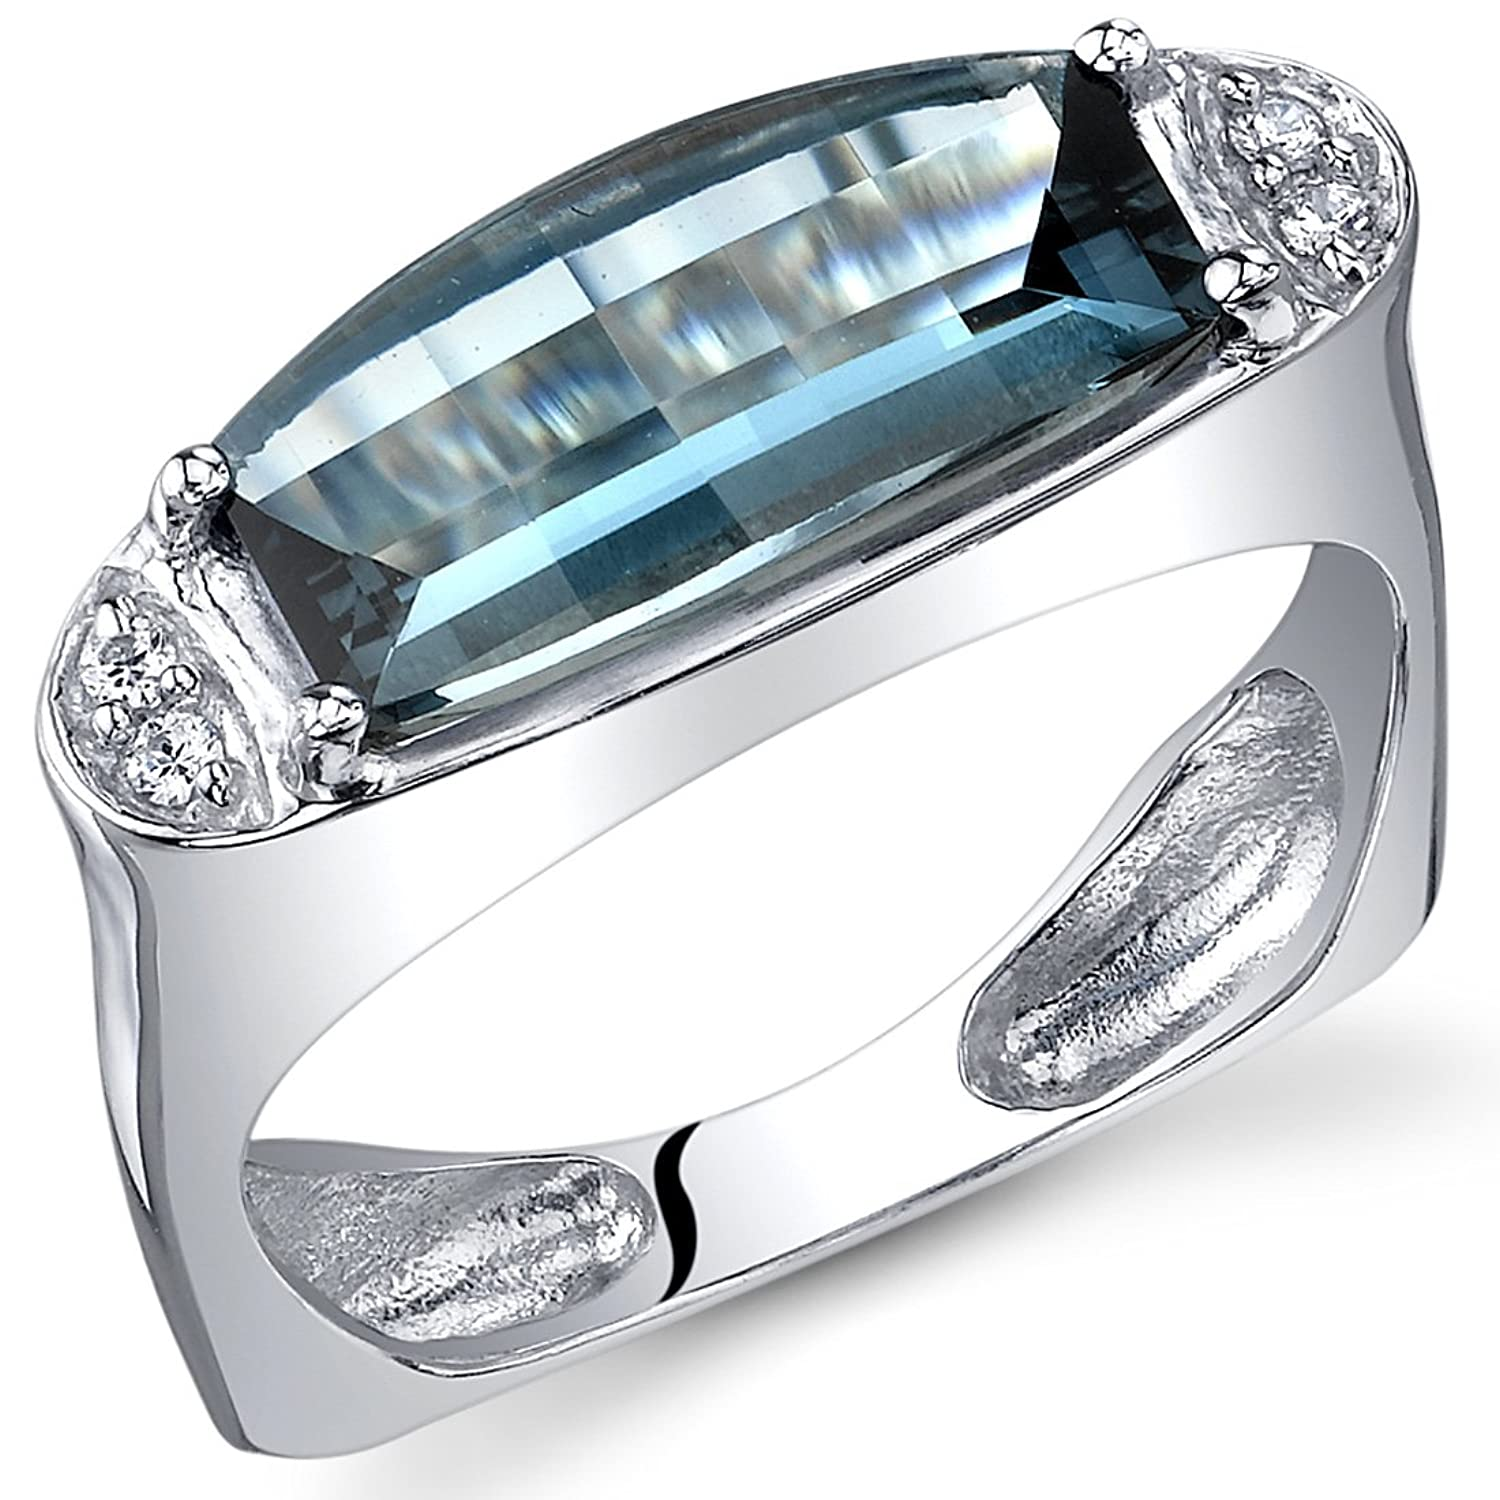 London Blue Topaz Ring Sterling Silver Barrel Cut 3.00 Carats Sizes 5 to 9